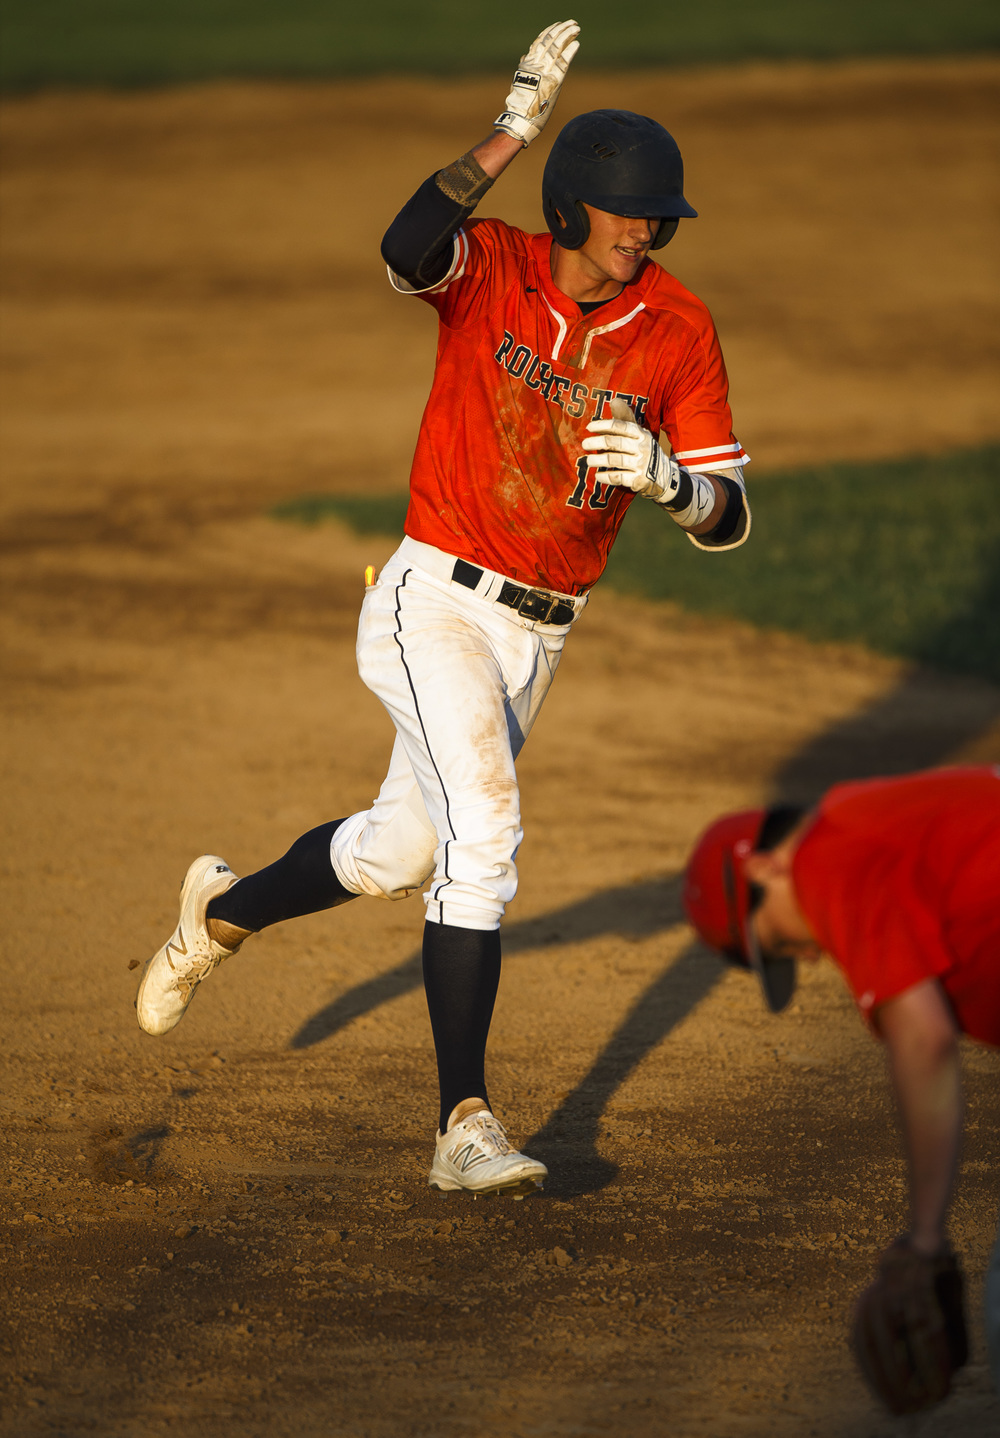 Rochester's Tyler Fitzgerald (10) signals towards the dugout as he rounds third after hitting a home run to tie the game against Lincoln in the 5th inning during the Class 3A Springfield Regional Semifinals at Robin Roberts Stadium, Wednesday, May 25, 2016, in Springfield, Ill. Justin L. Fowler/The State Journal-Register